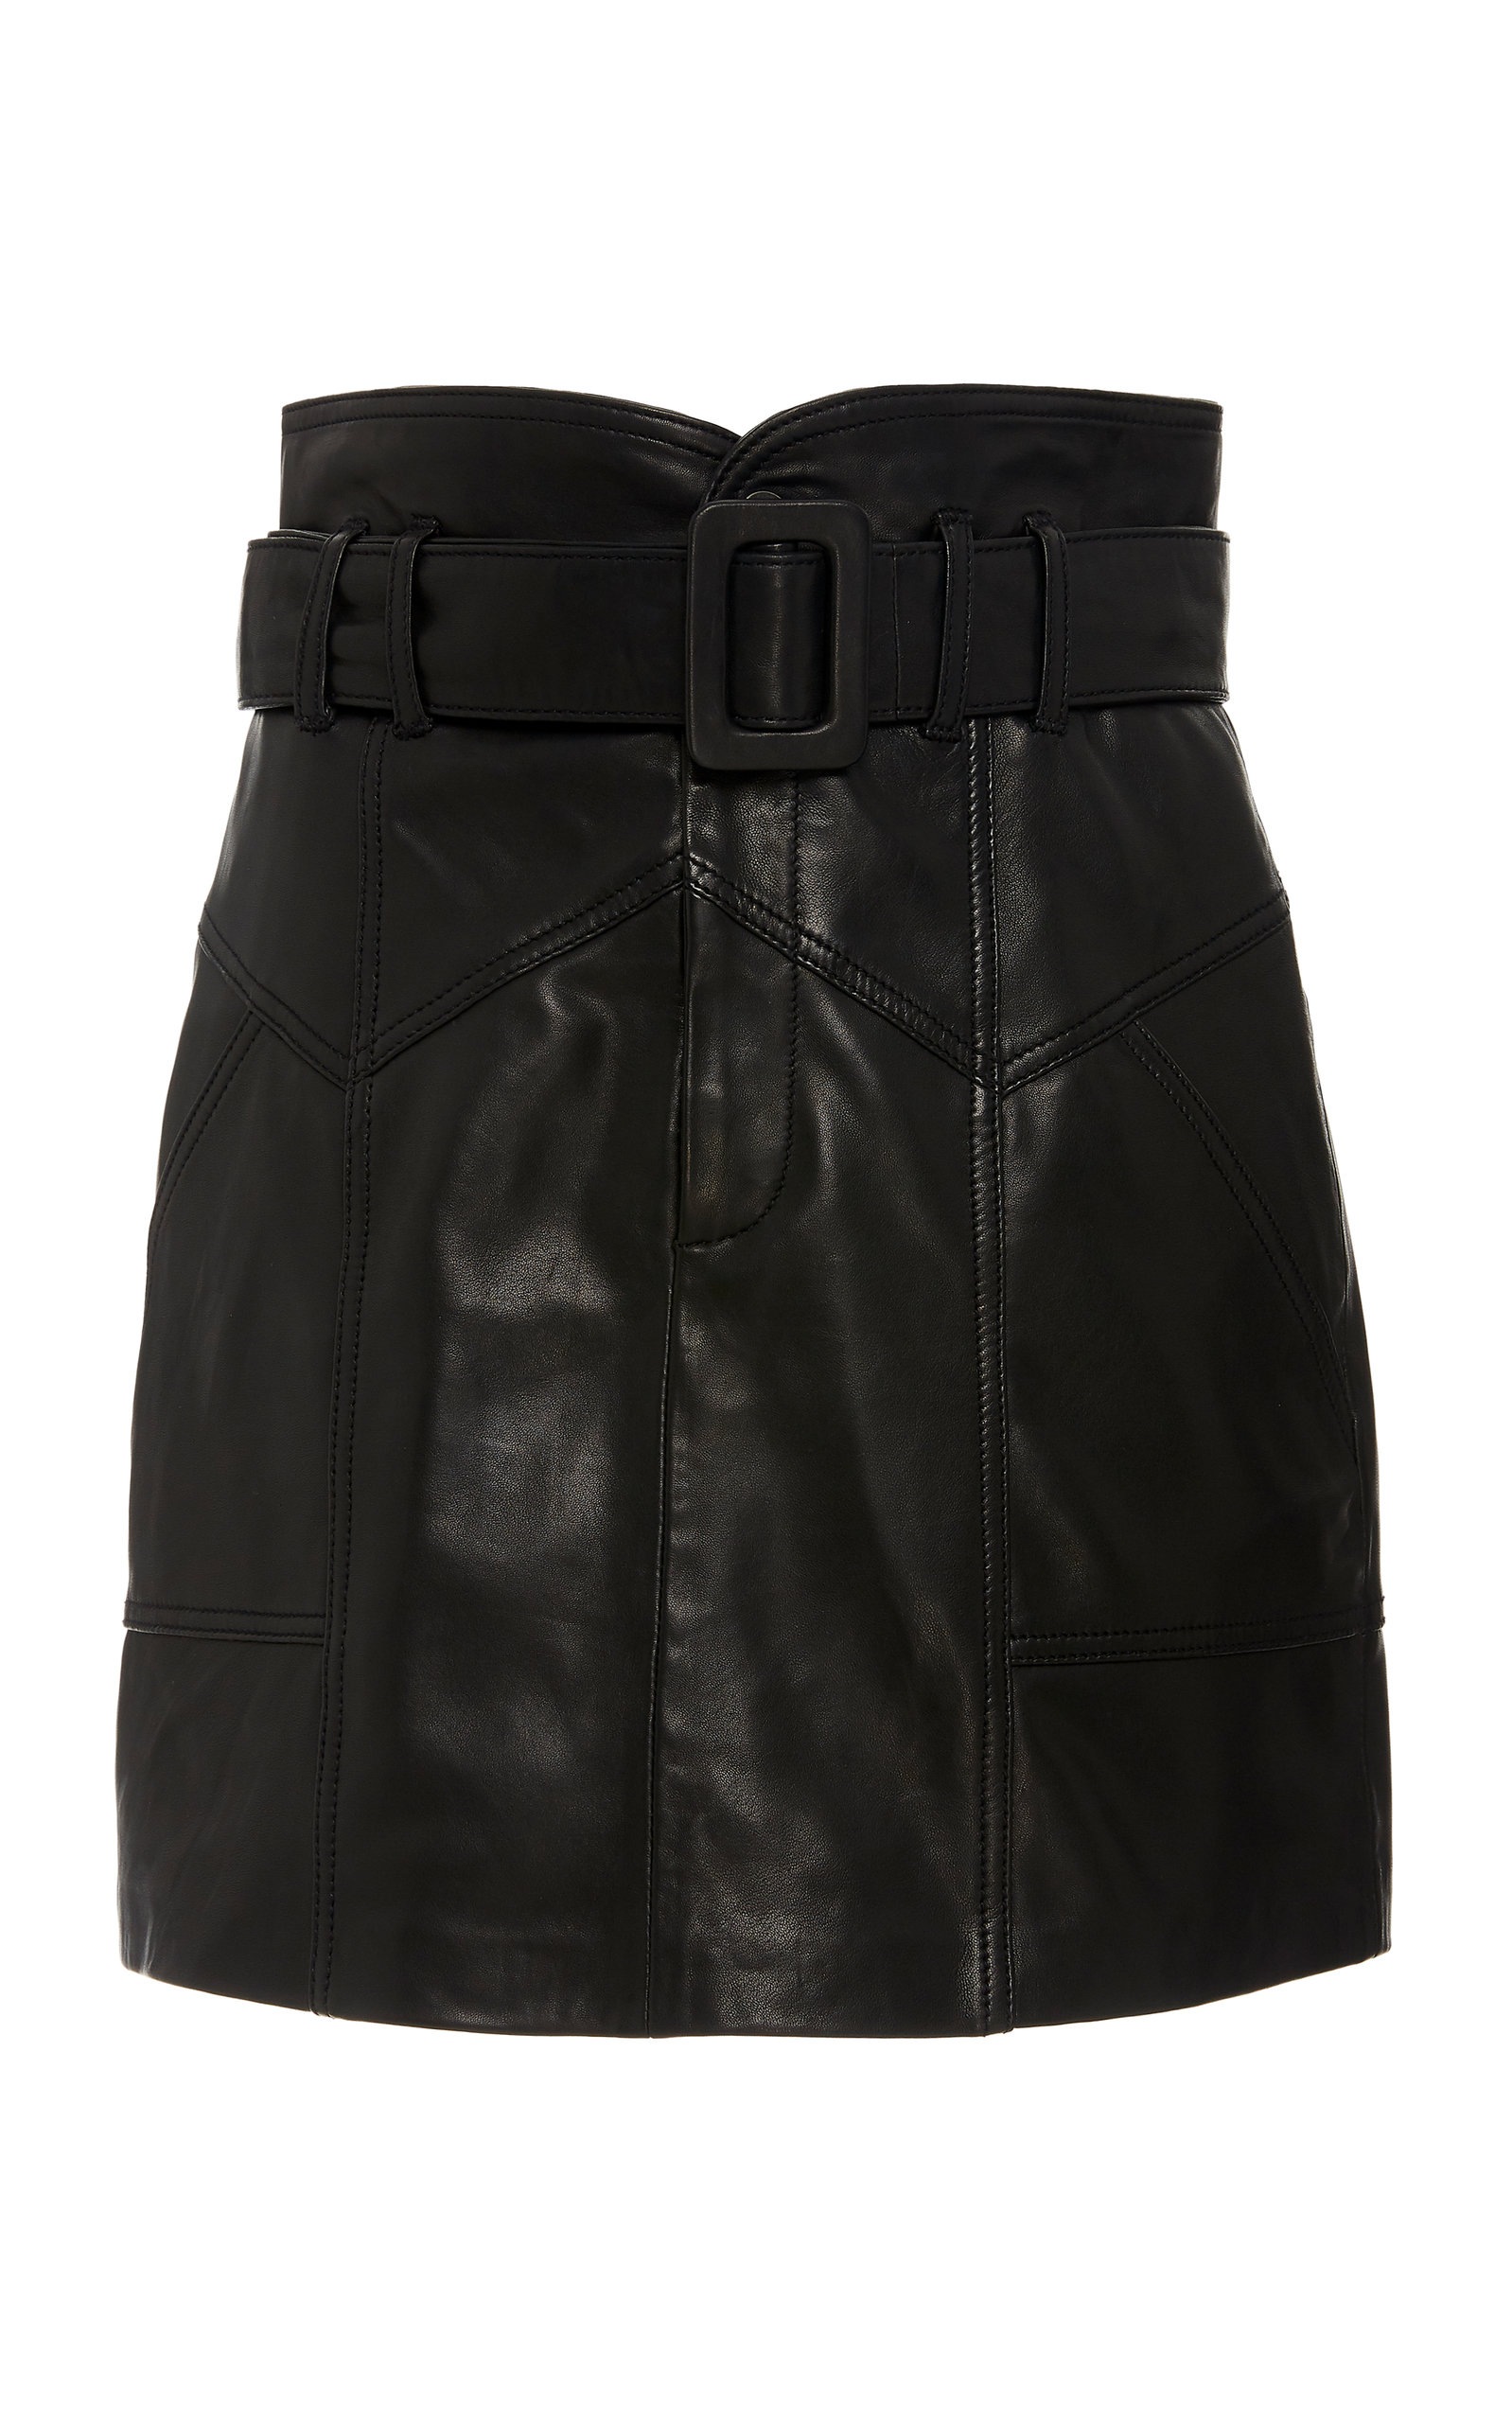 Marissa Webb Claire Belted Leather Mini Skirt